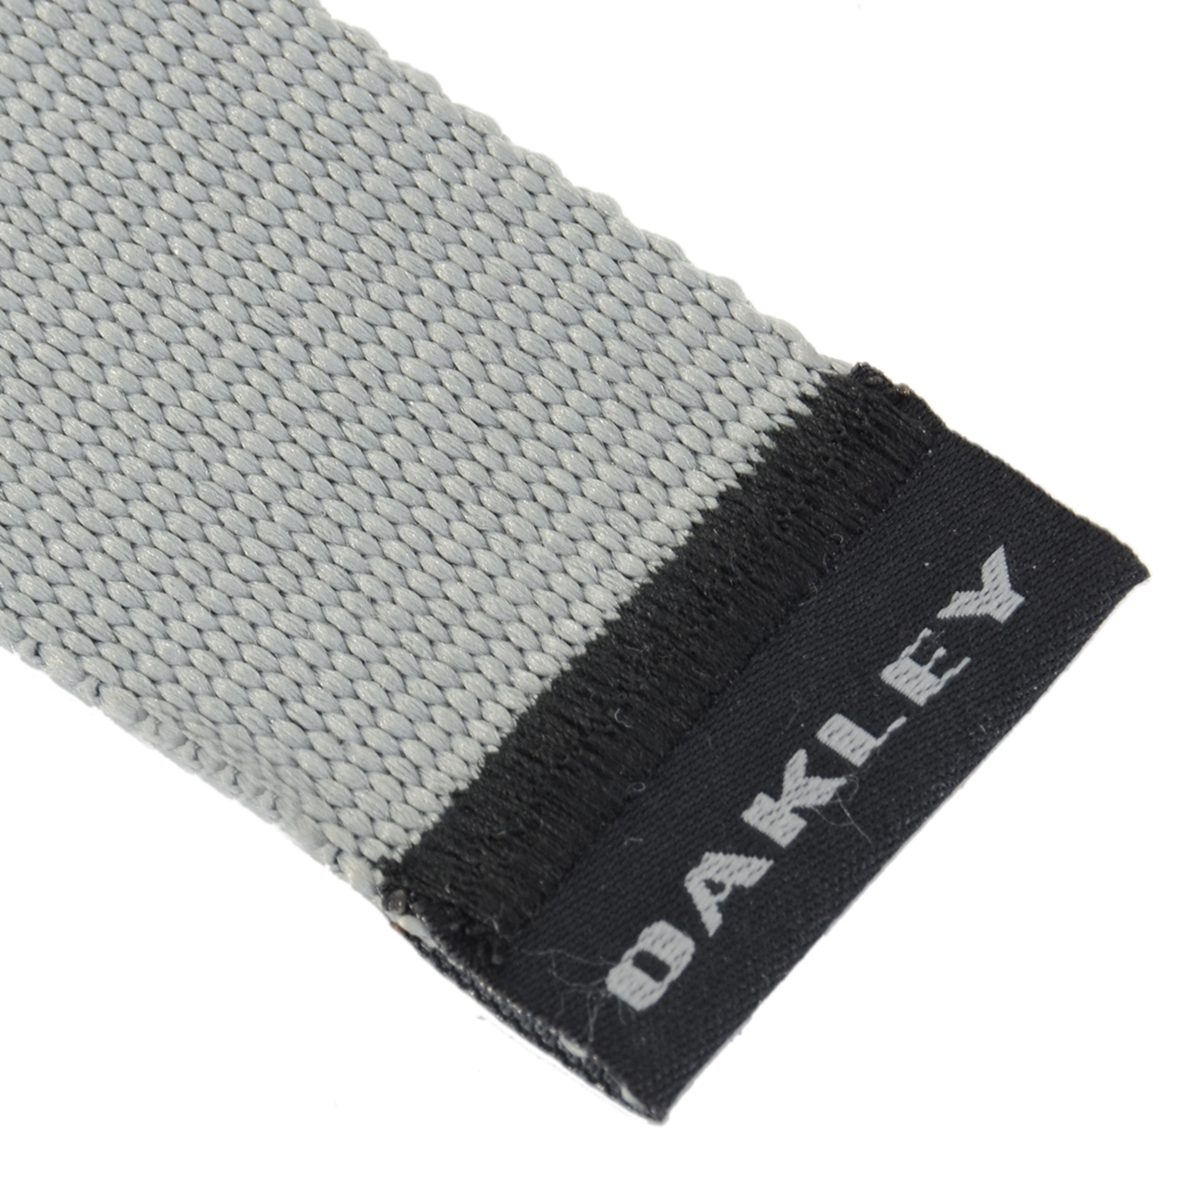 cinto oakley square web belt cinza. Carregando zoom. fafb66cd0f3